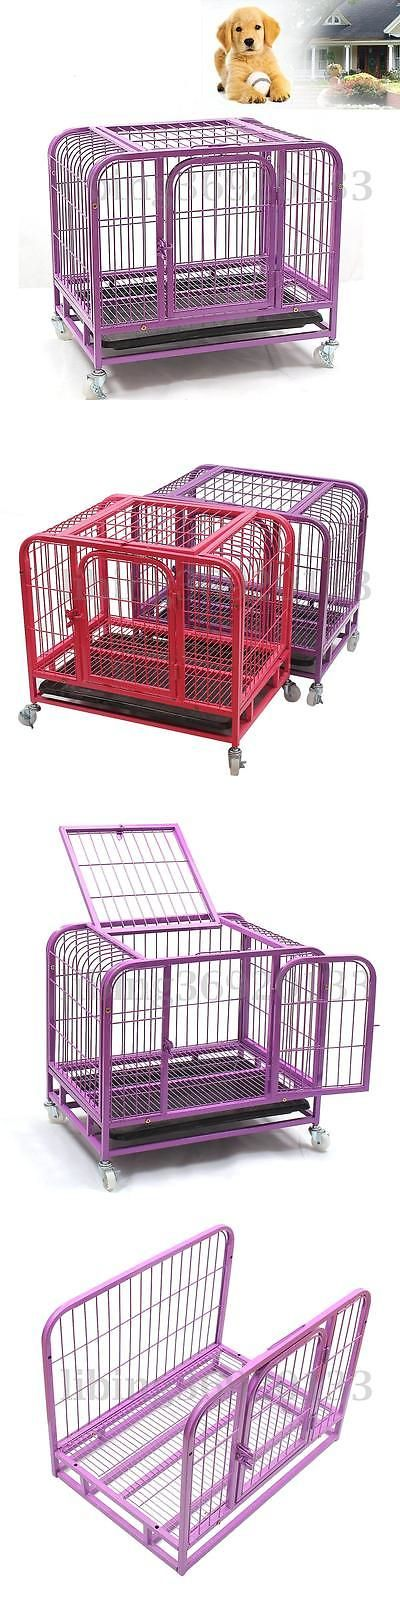 Cages and Crates 121851: 31 Heavy-Duty Pet Dog Puppy Cage Folding Strong Steel Crate Carrier Wheels BUY IT NOW ONLY: $63.99